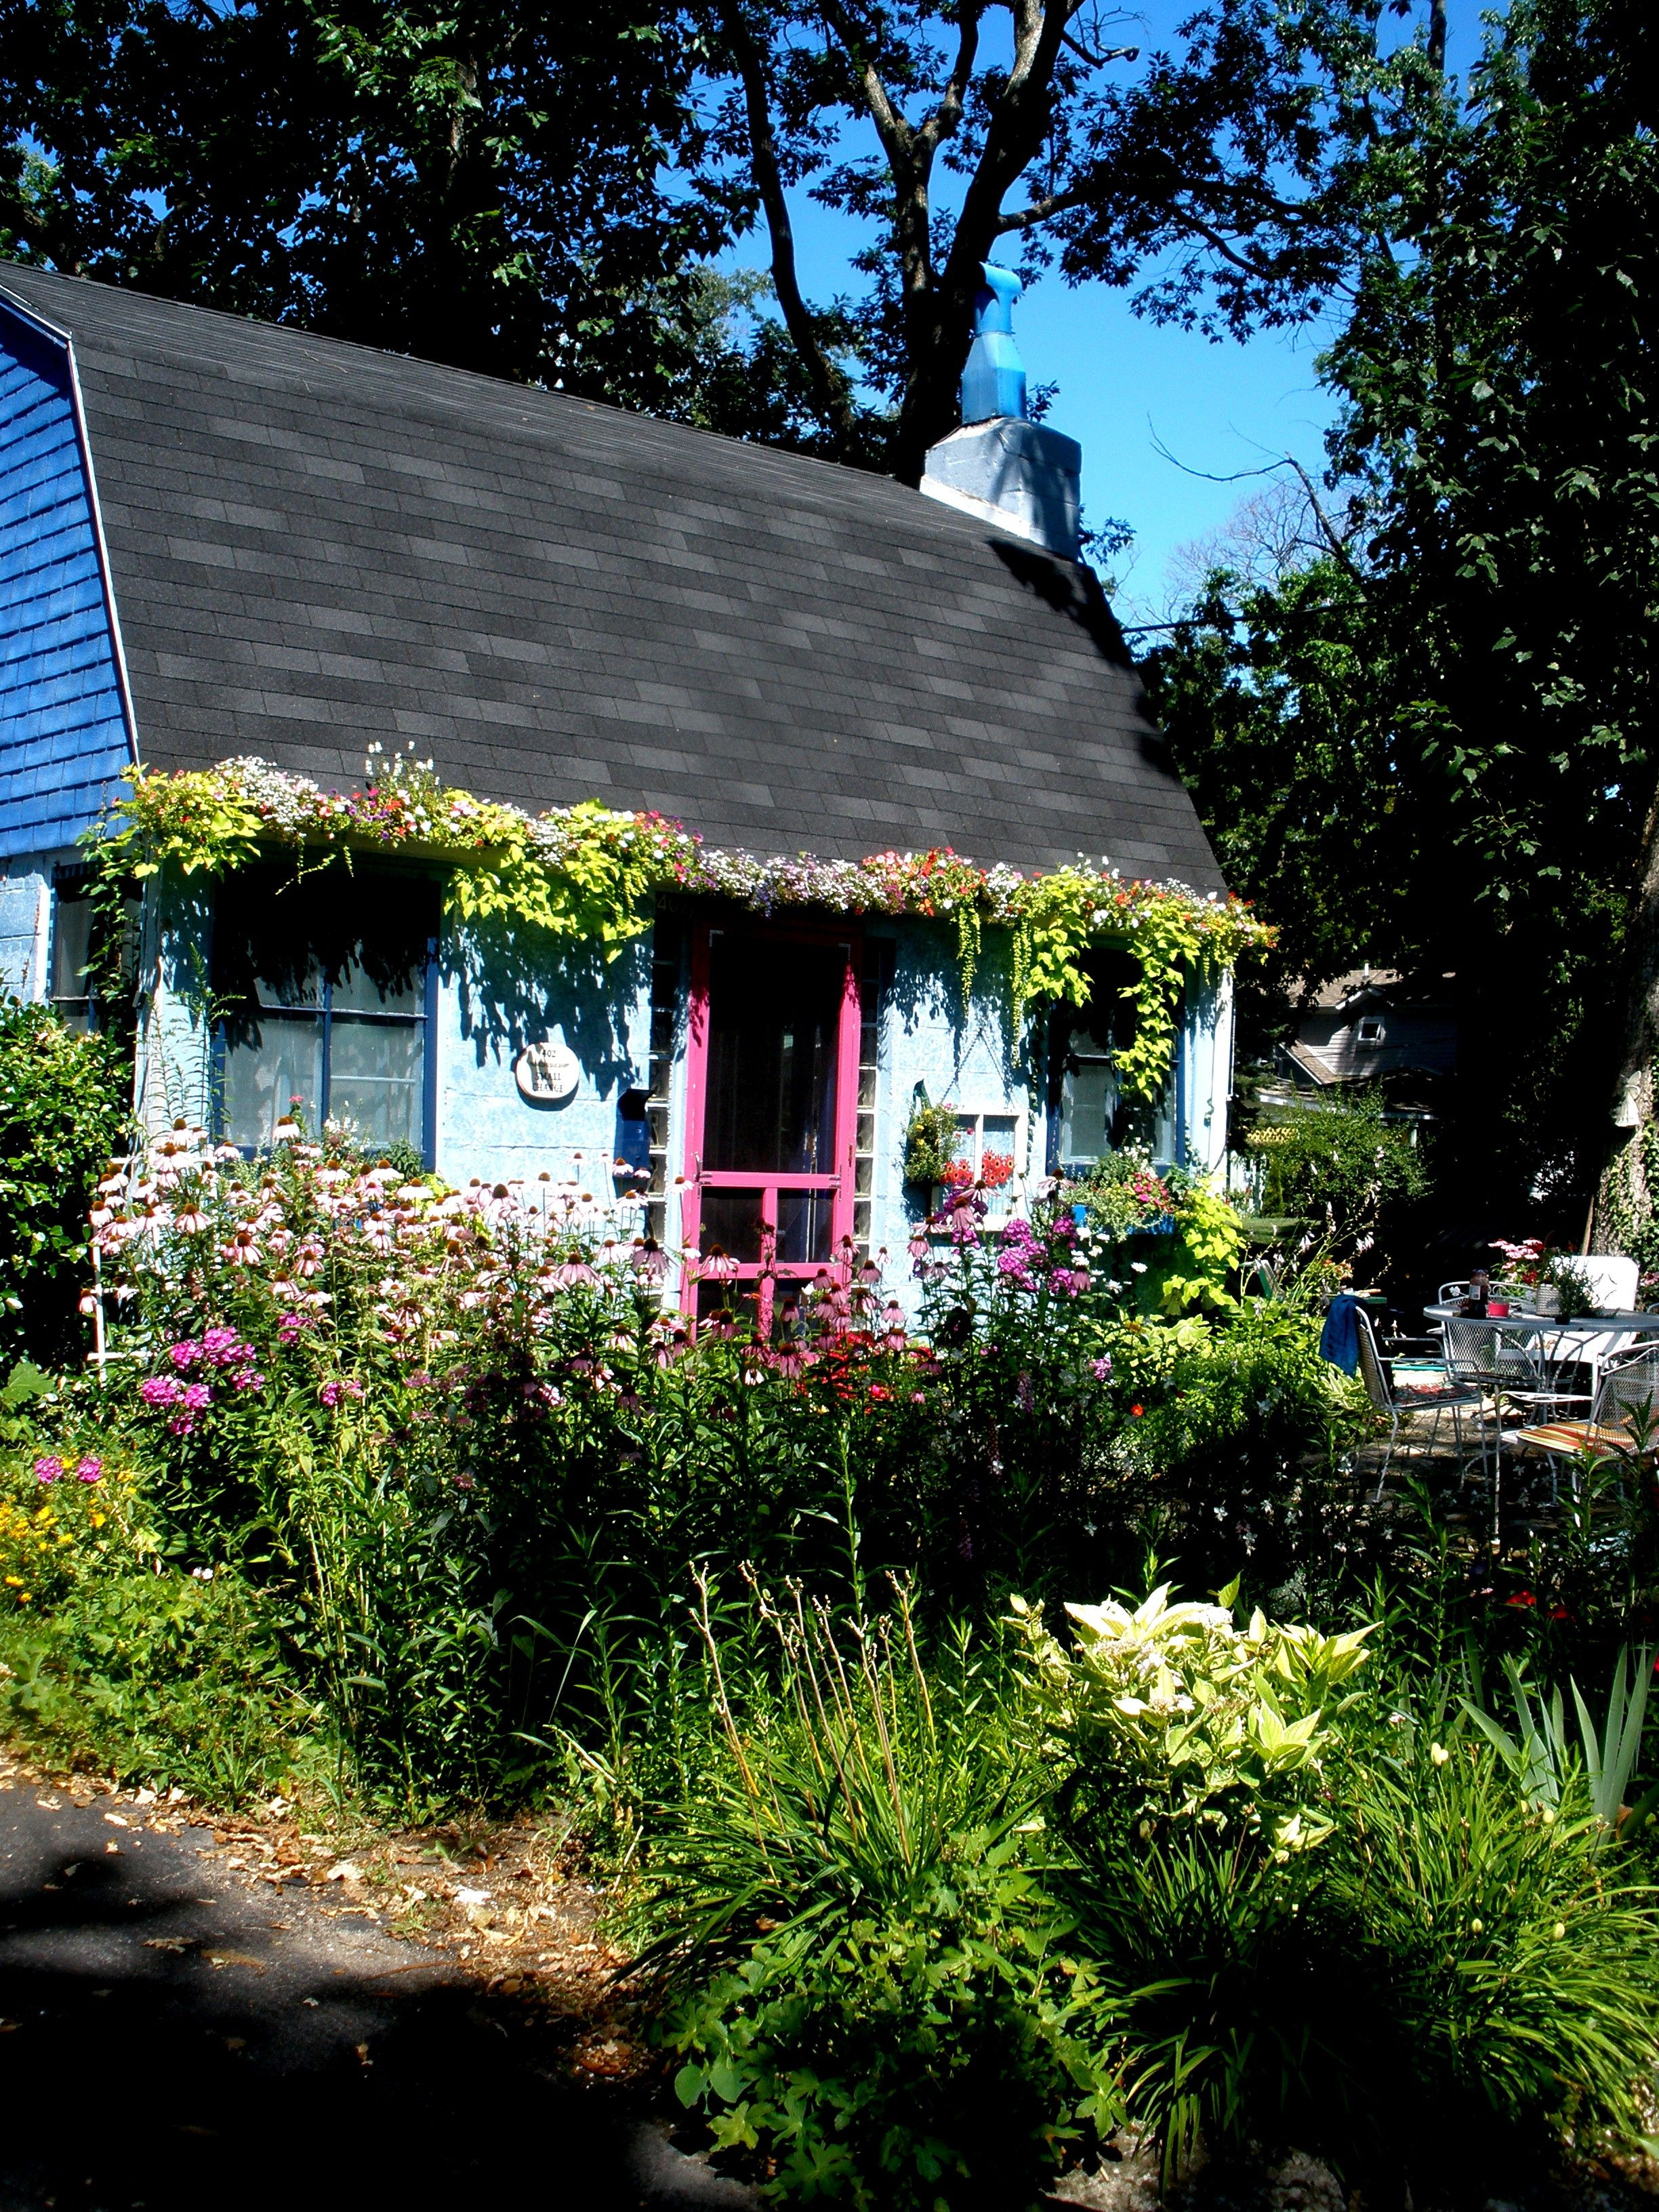 sweet little flower cottage at Lakeside, Ohio photo by Jan